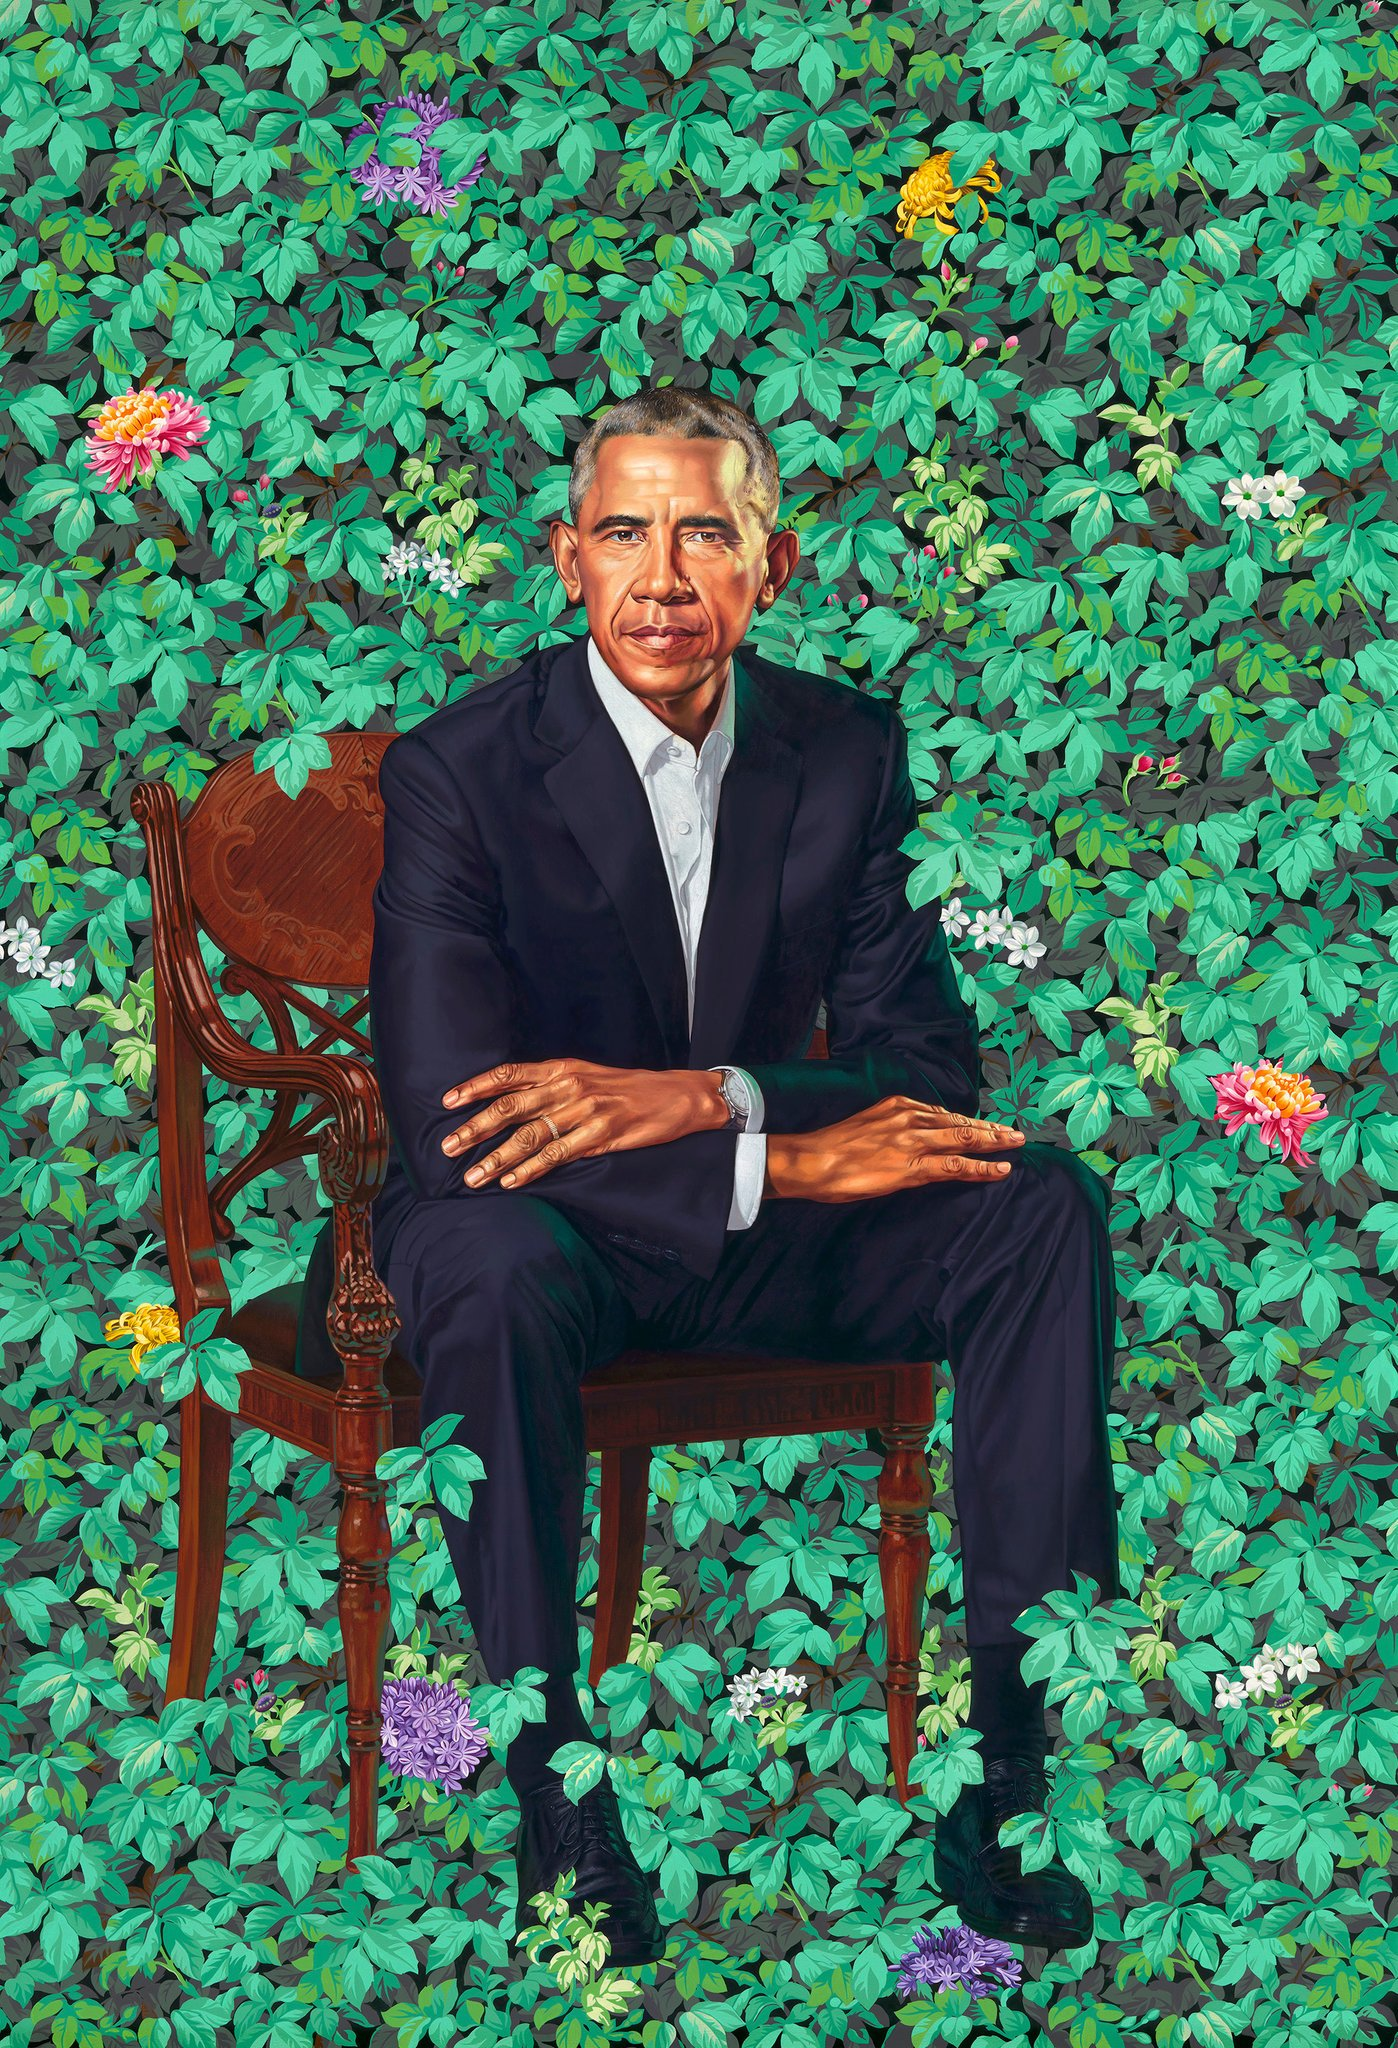 Presidential portrait of Barack Obama by Kehinde Wiley